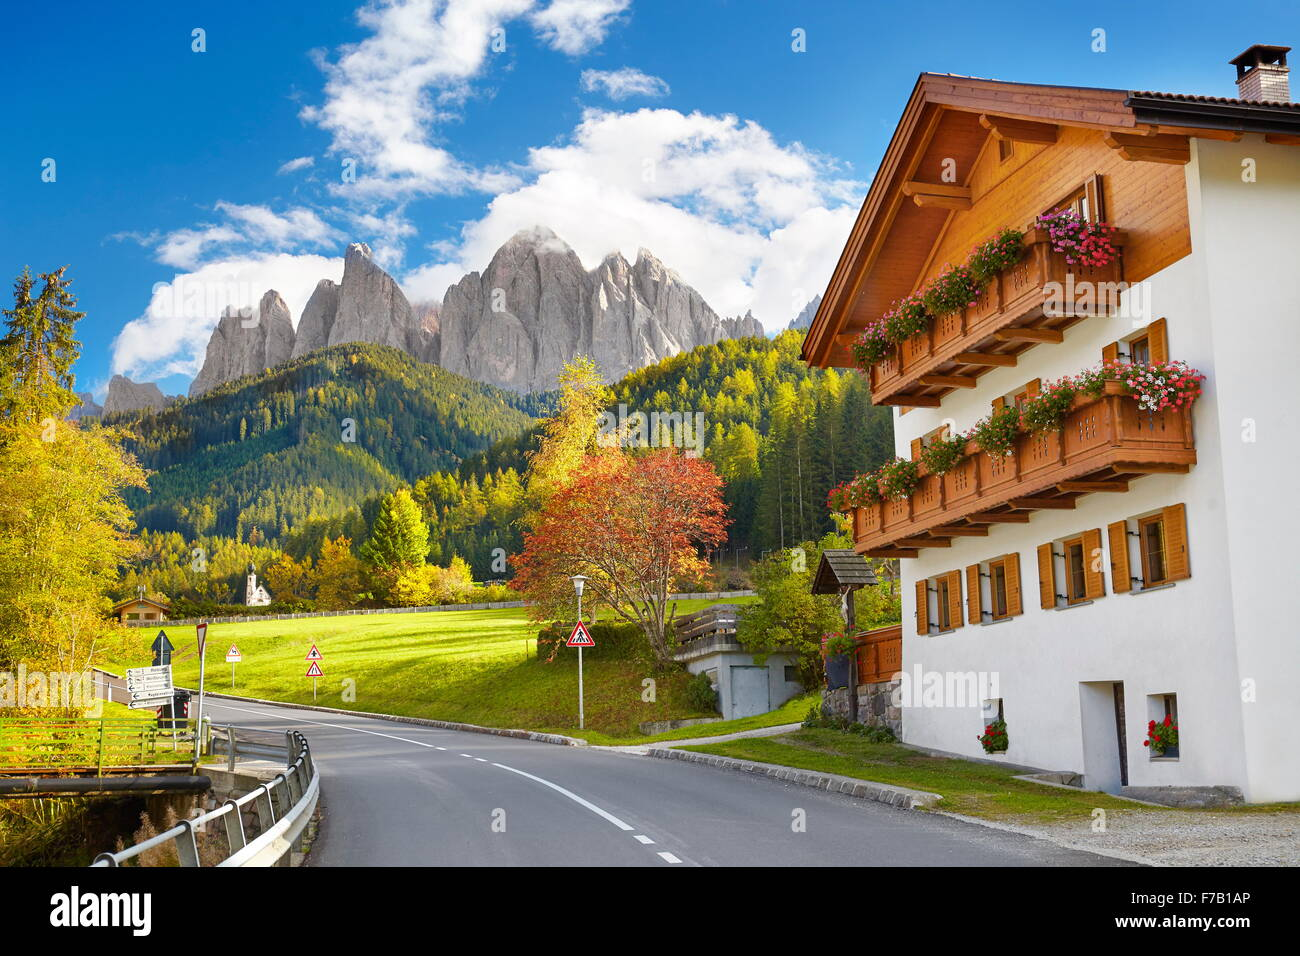 Val Di Funes, Tyrol Province, Alps, Dolomites Mountains, Italy Stock Photo